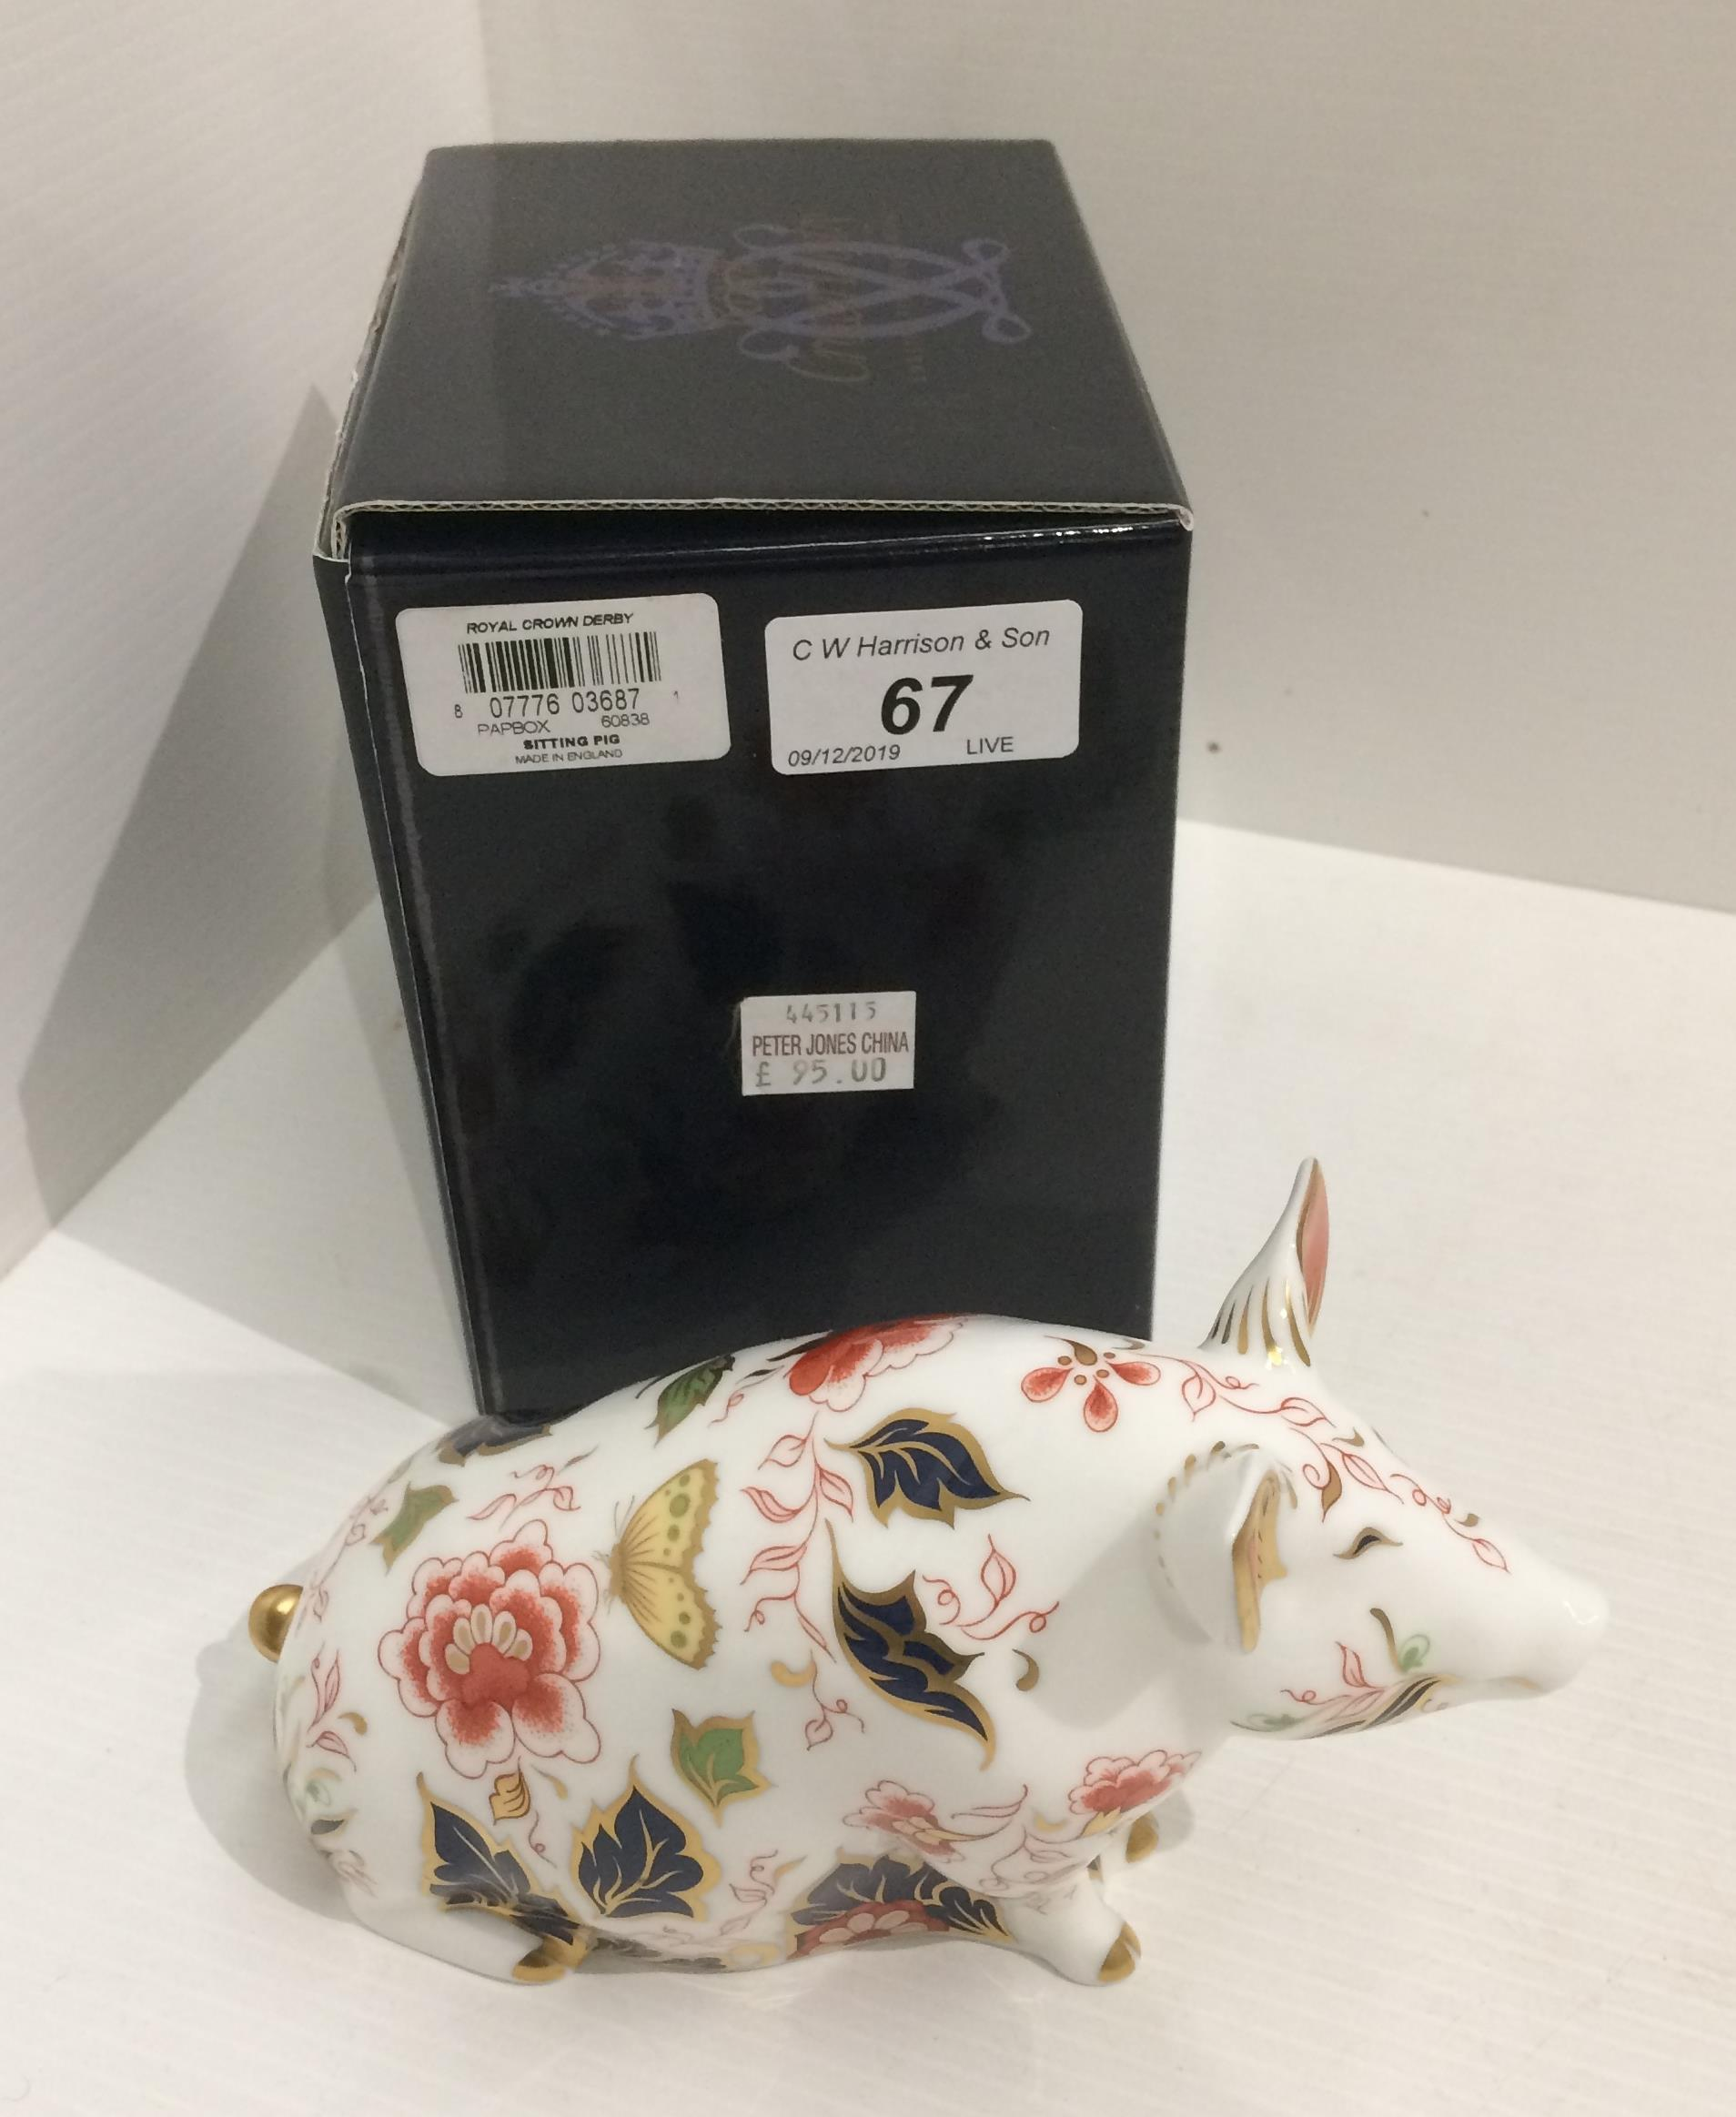 Lot 67 - A Royal Crown Derby bone china Sitting Pig paperweight - 18cm long,